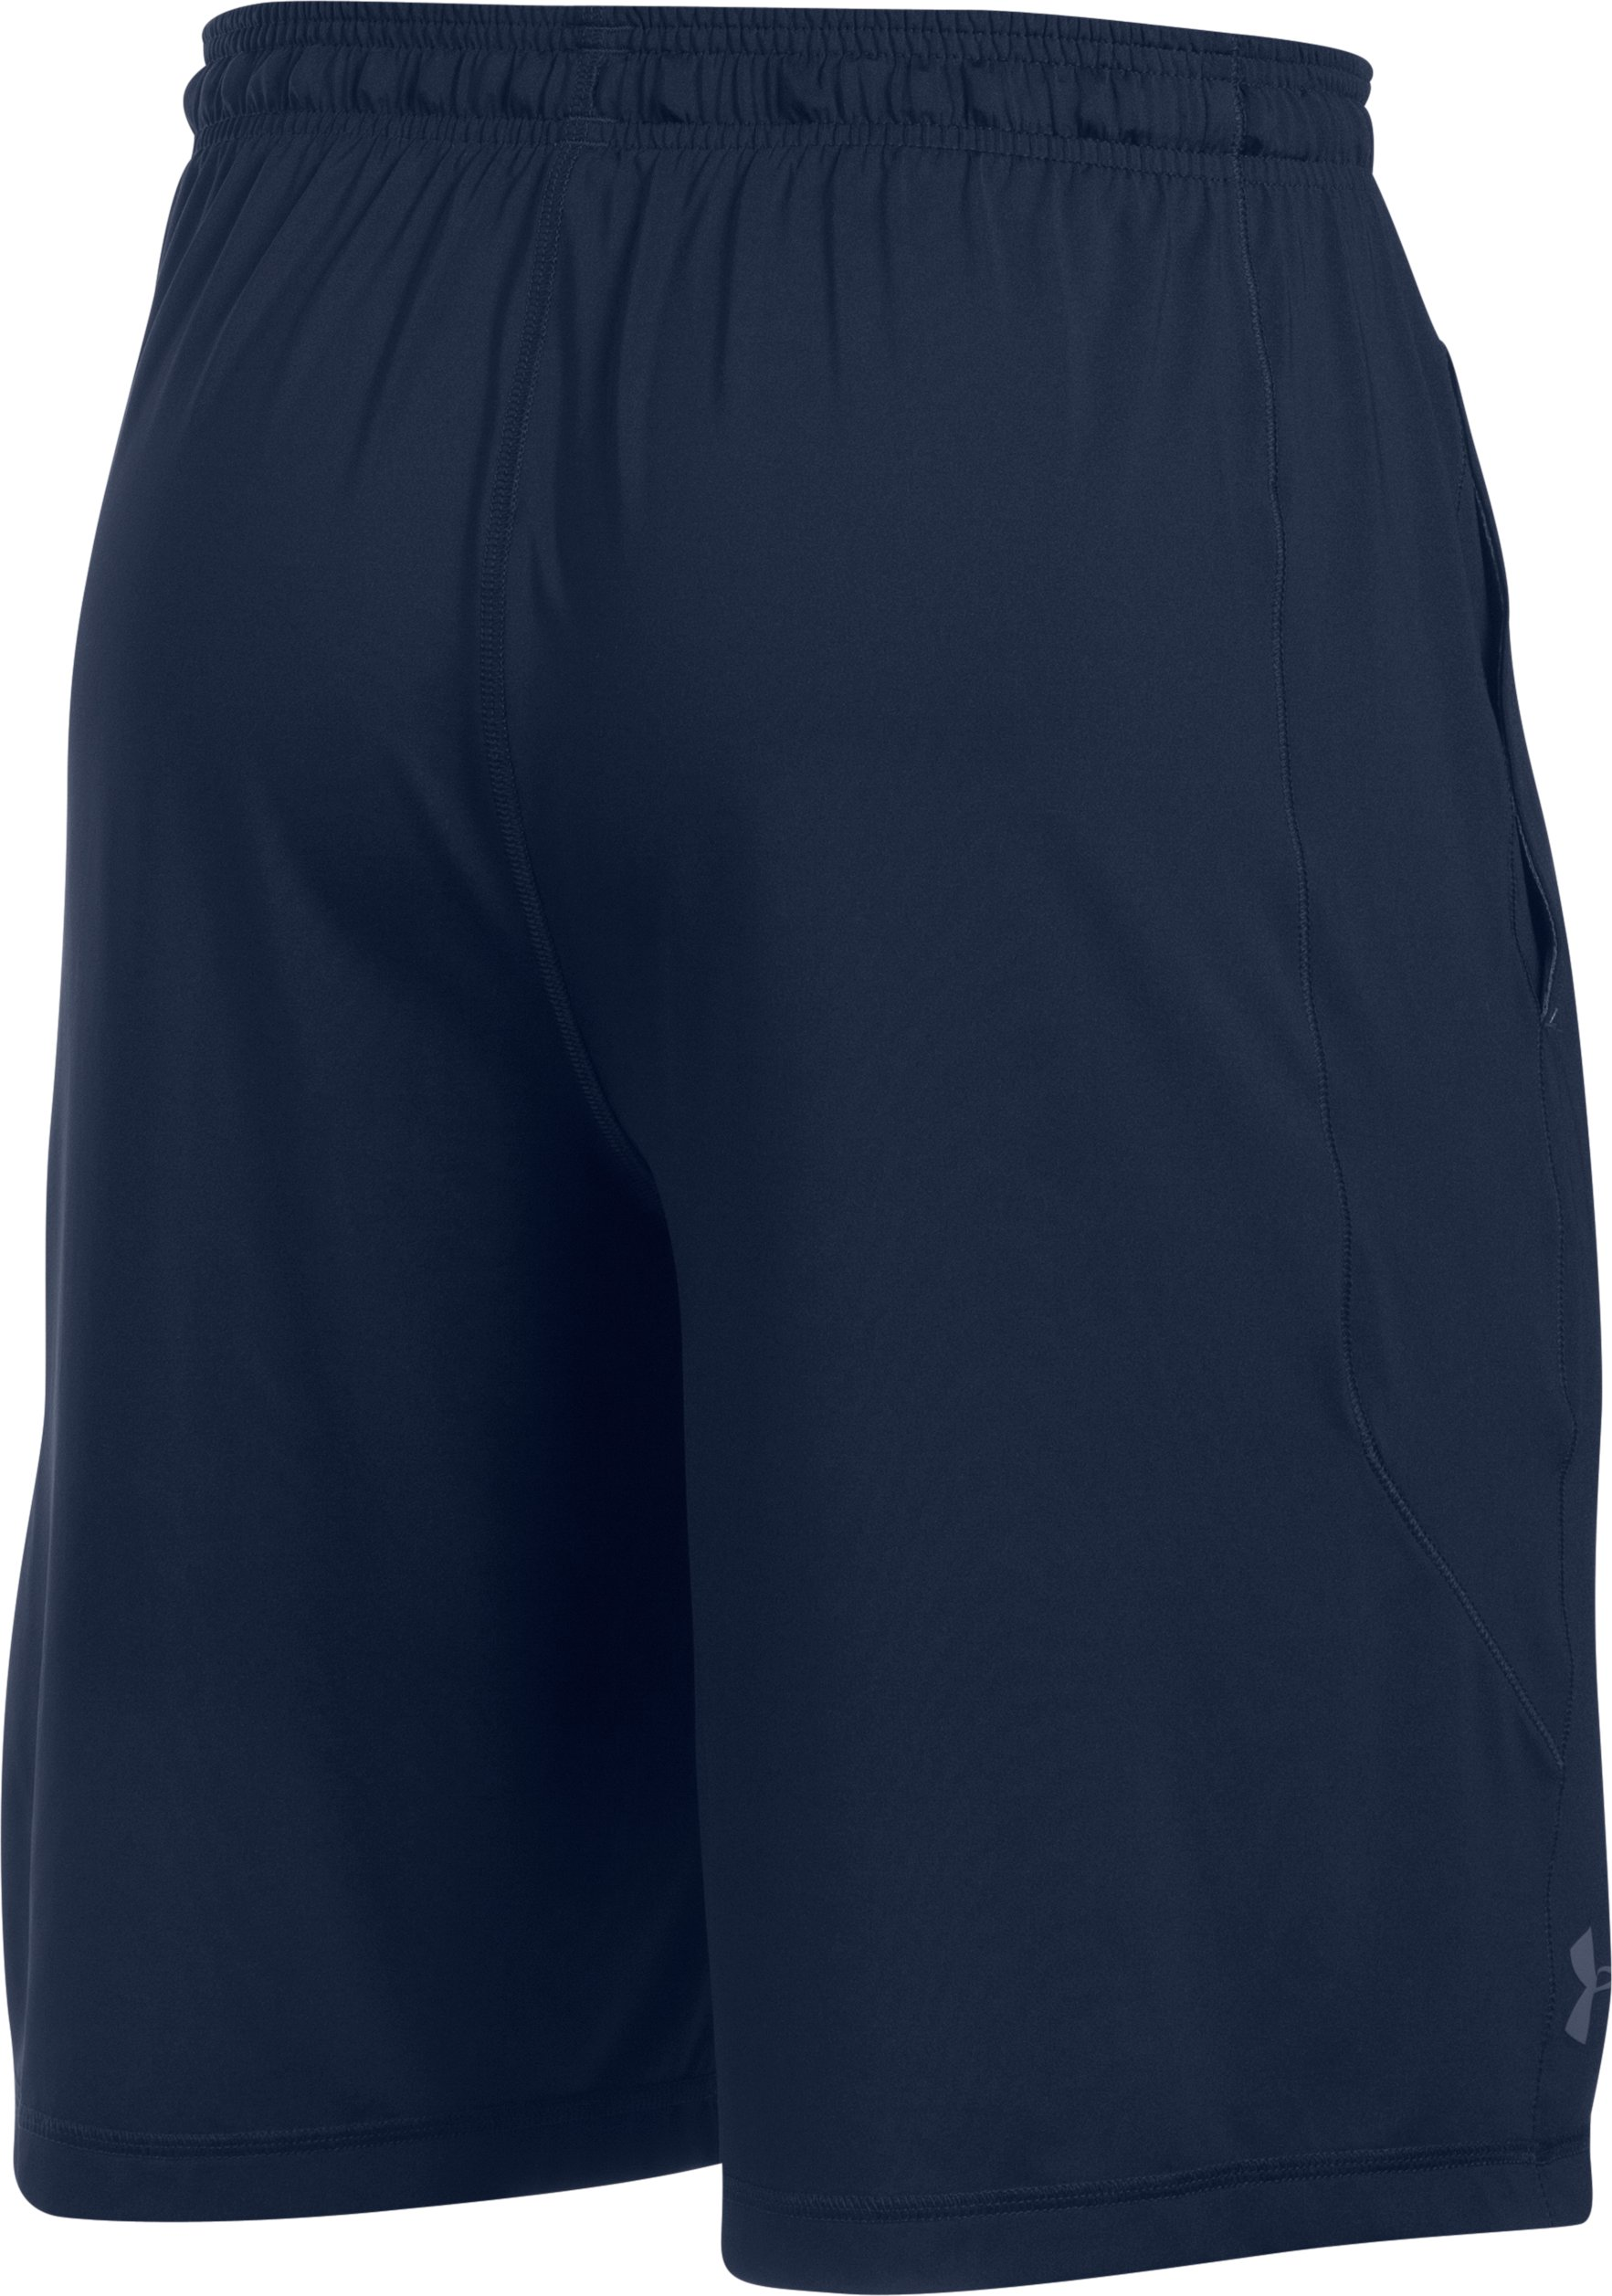 Men's New York Yankees Raid Shorts, Midnight Navy